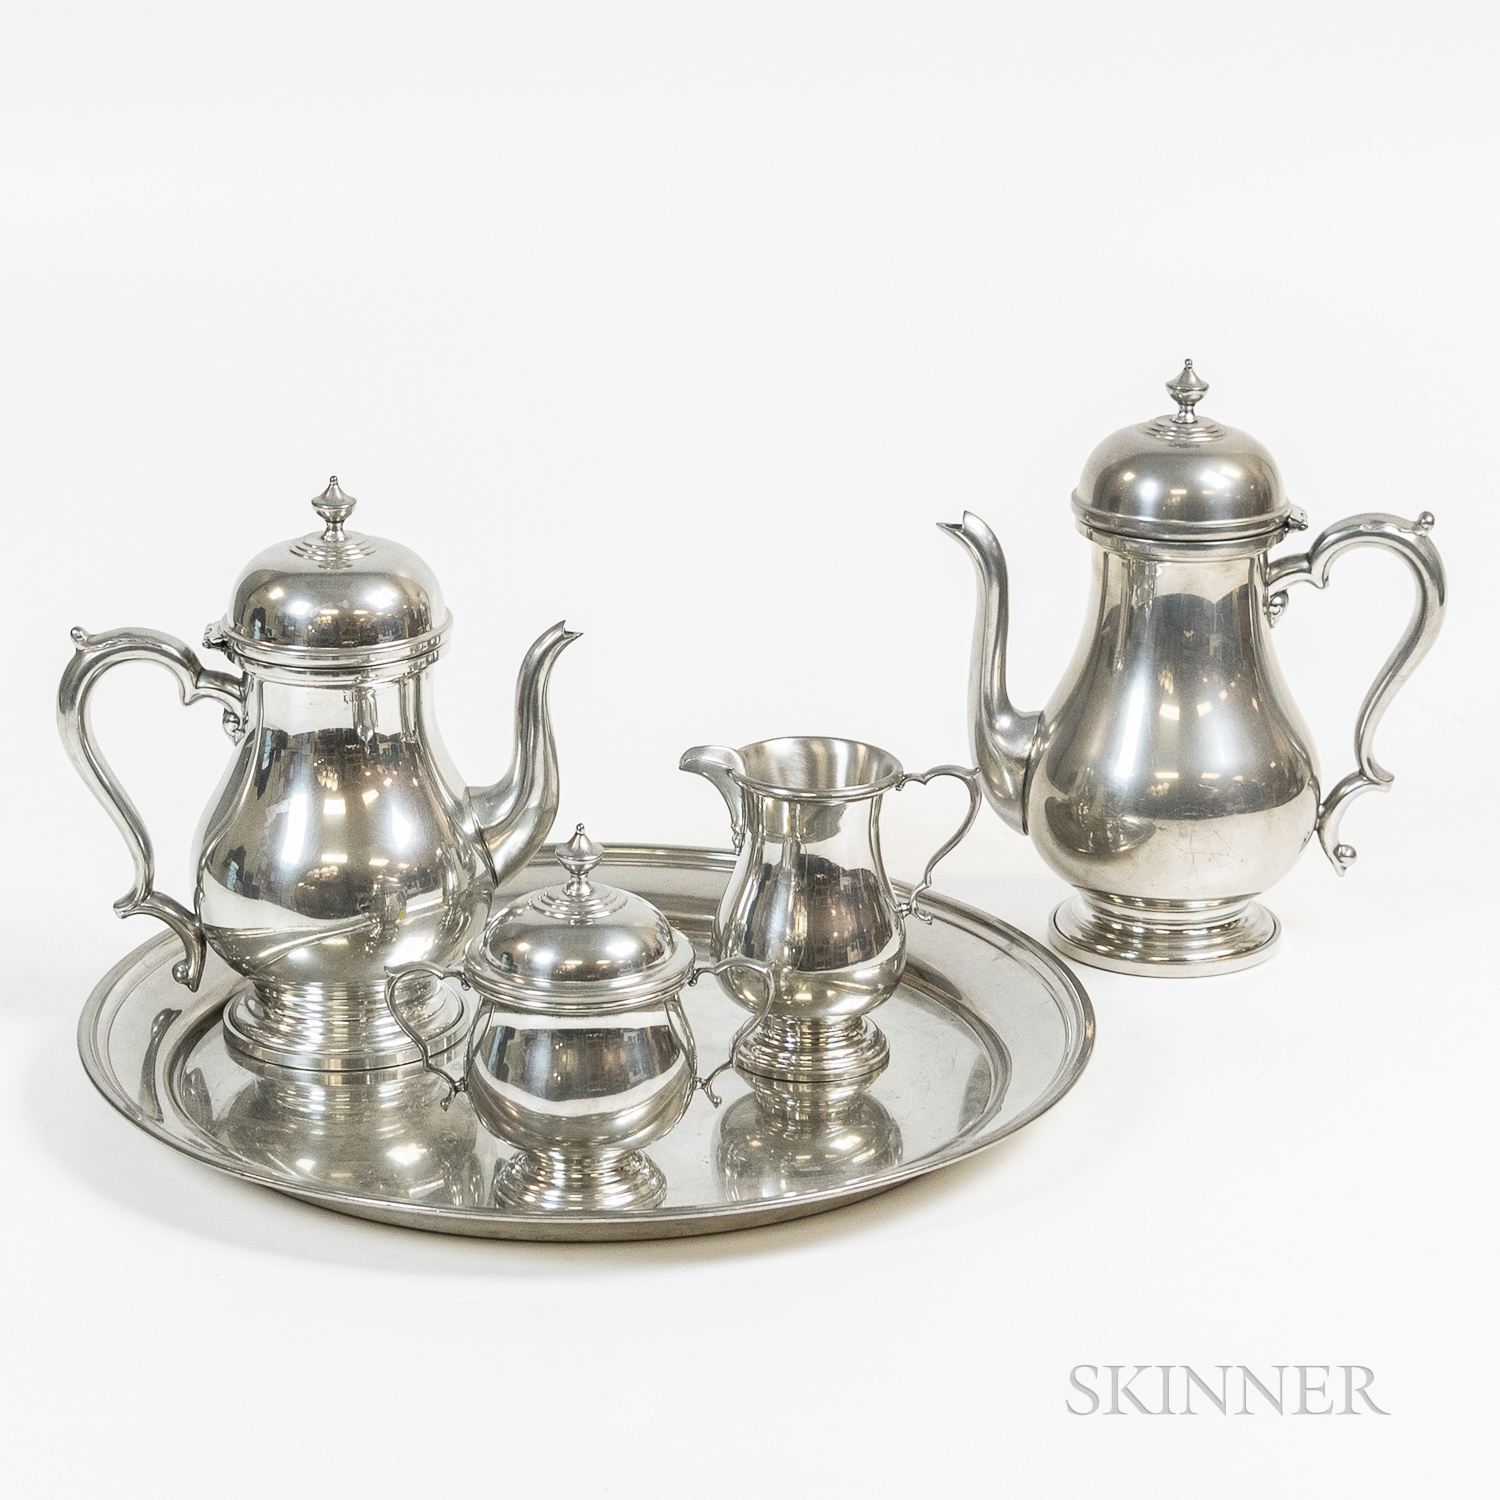 Boardman & Company Pewter Tea and Coffee Service